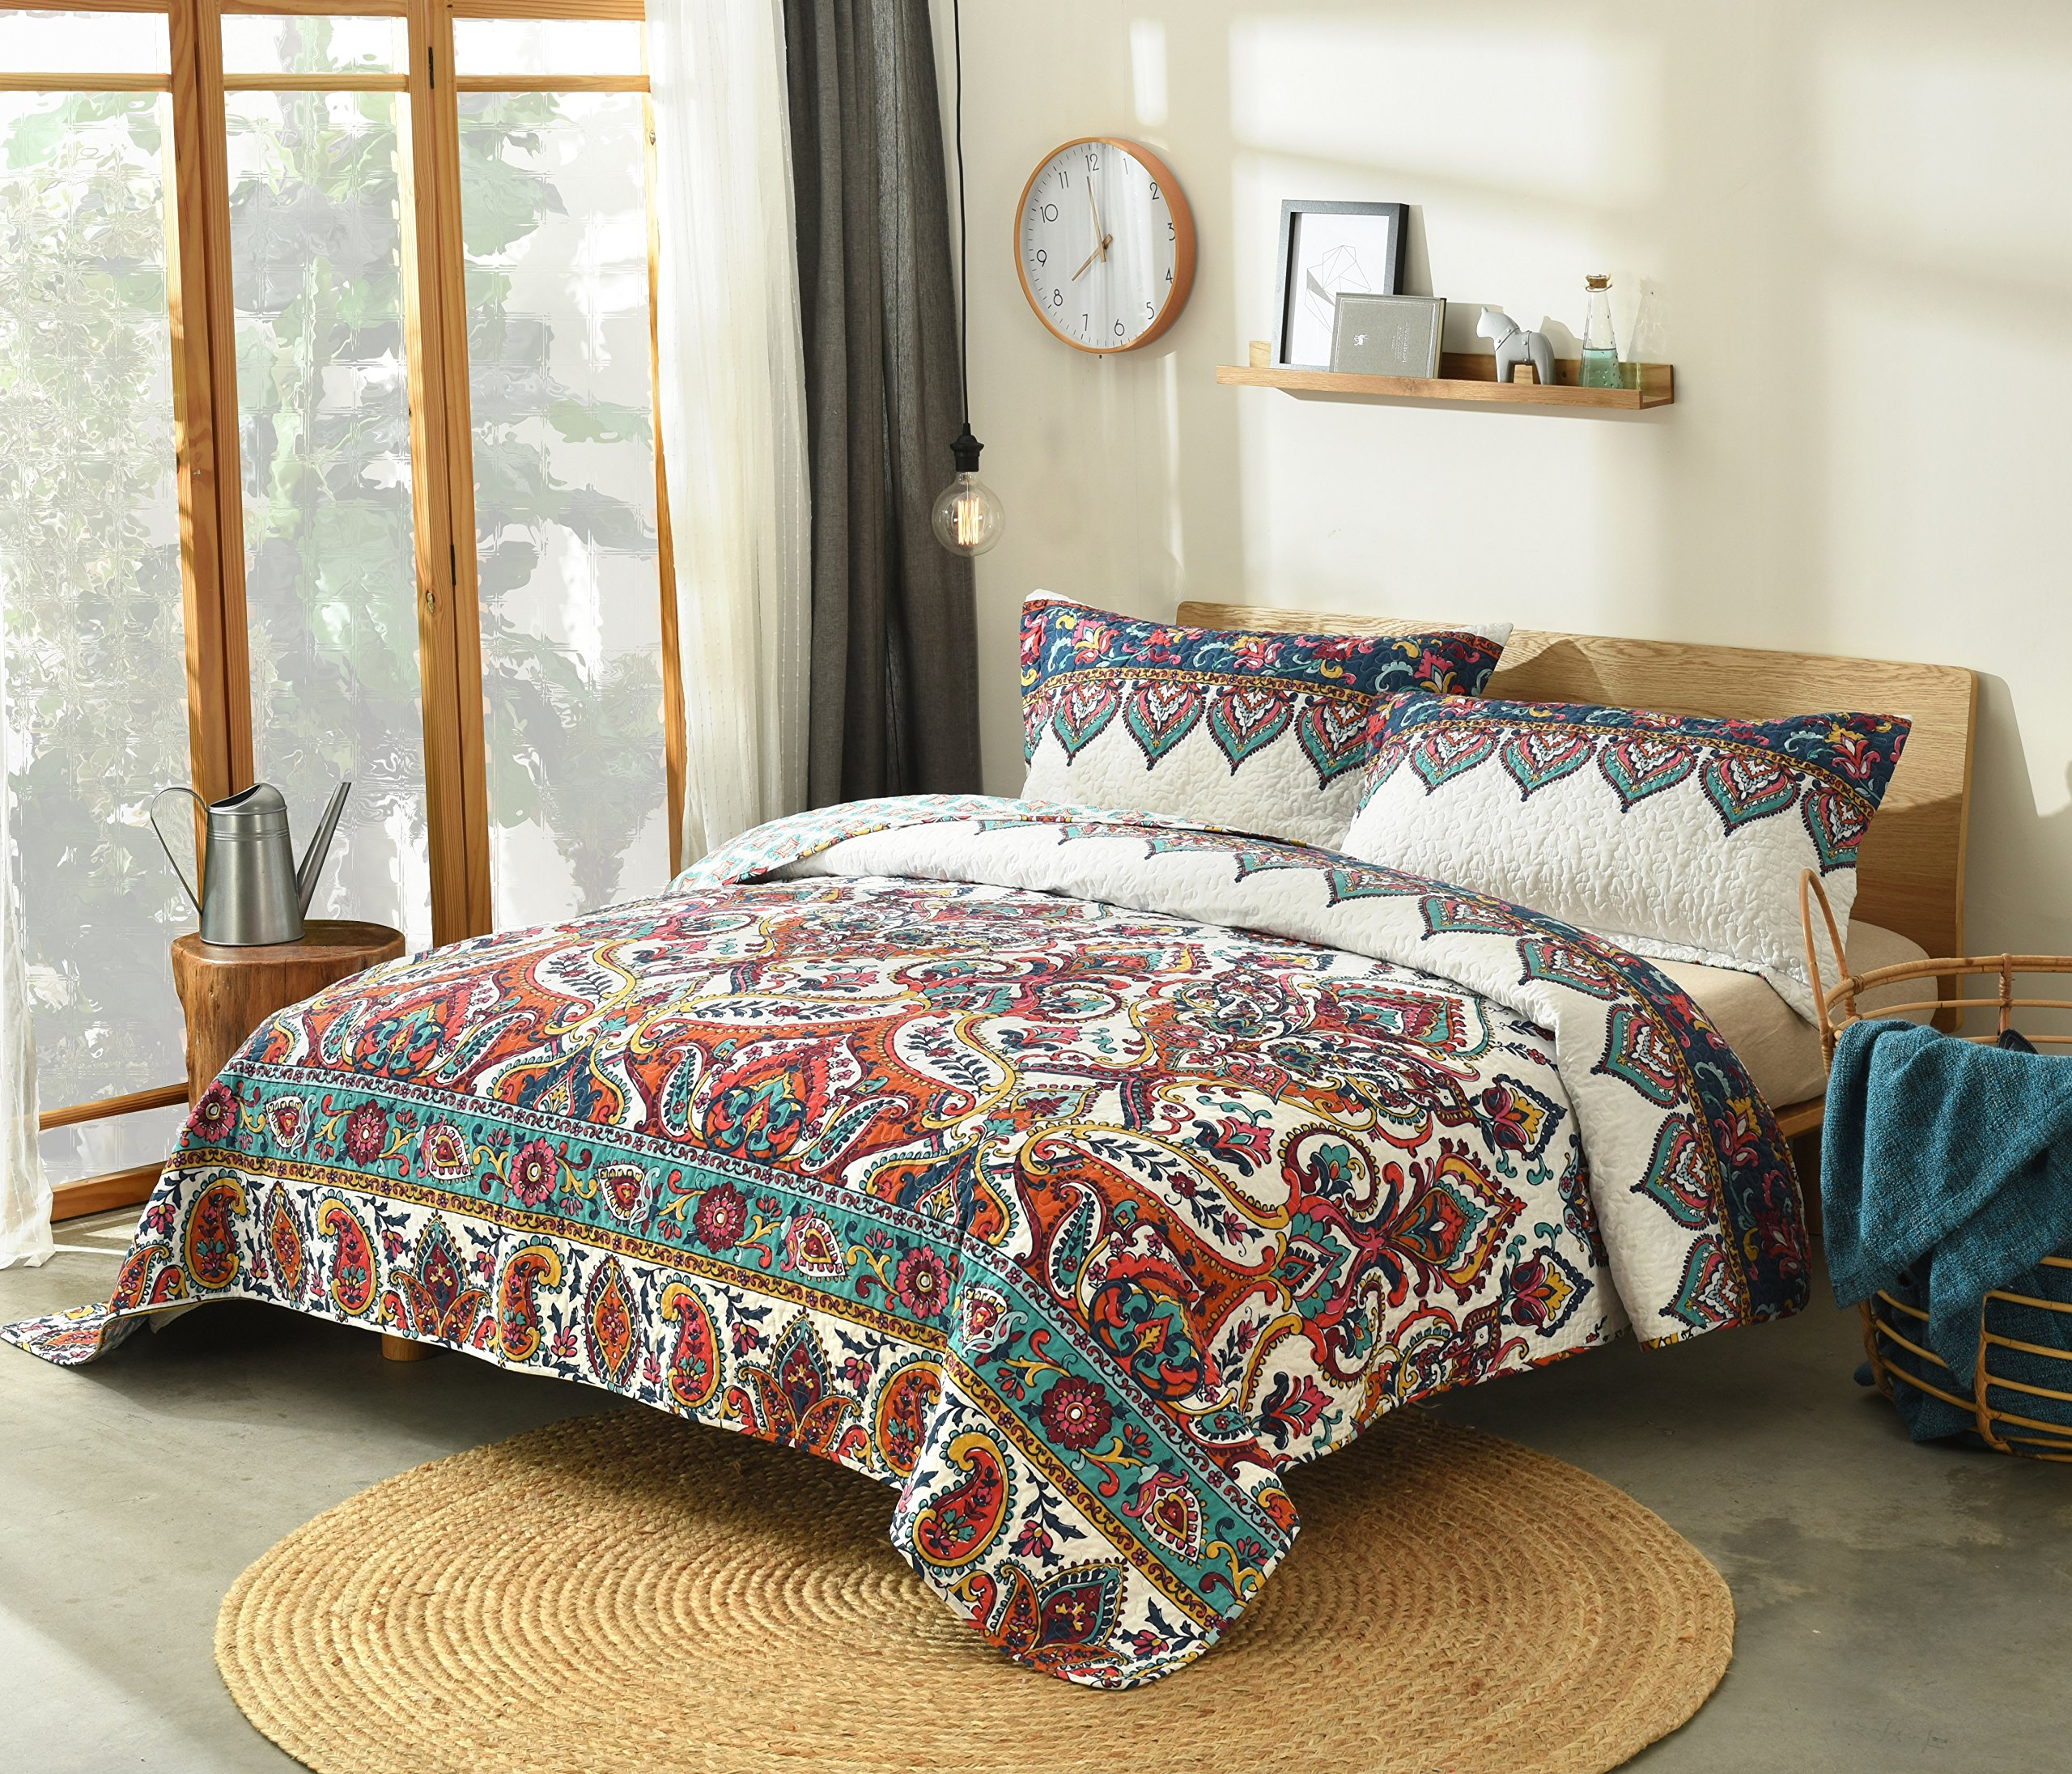 DaDa Bedding Bohemian Paisley Bedspread - Earthy Meadow Quilted Coverlet Set - Multi-Colorful Floral Print - Full - 3-Pieces